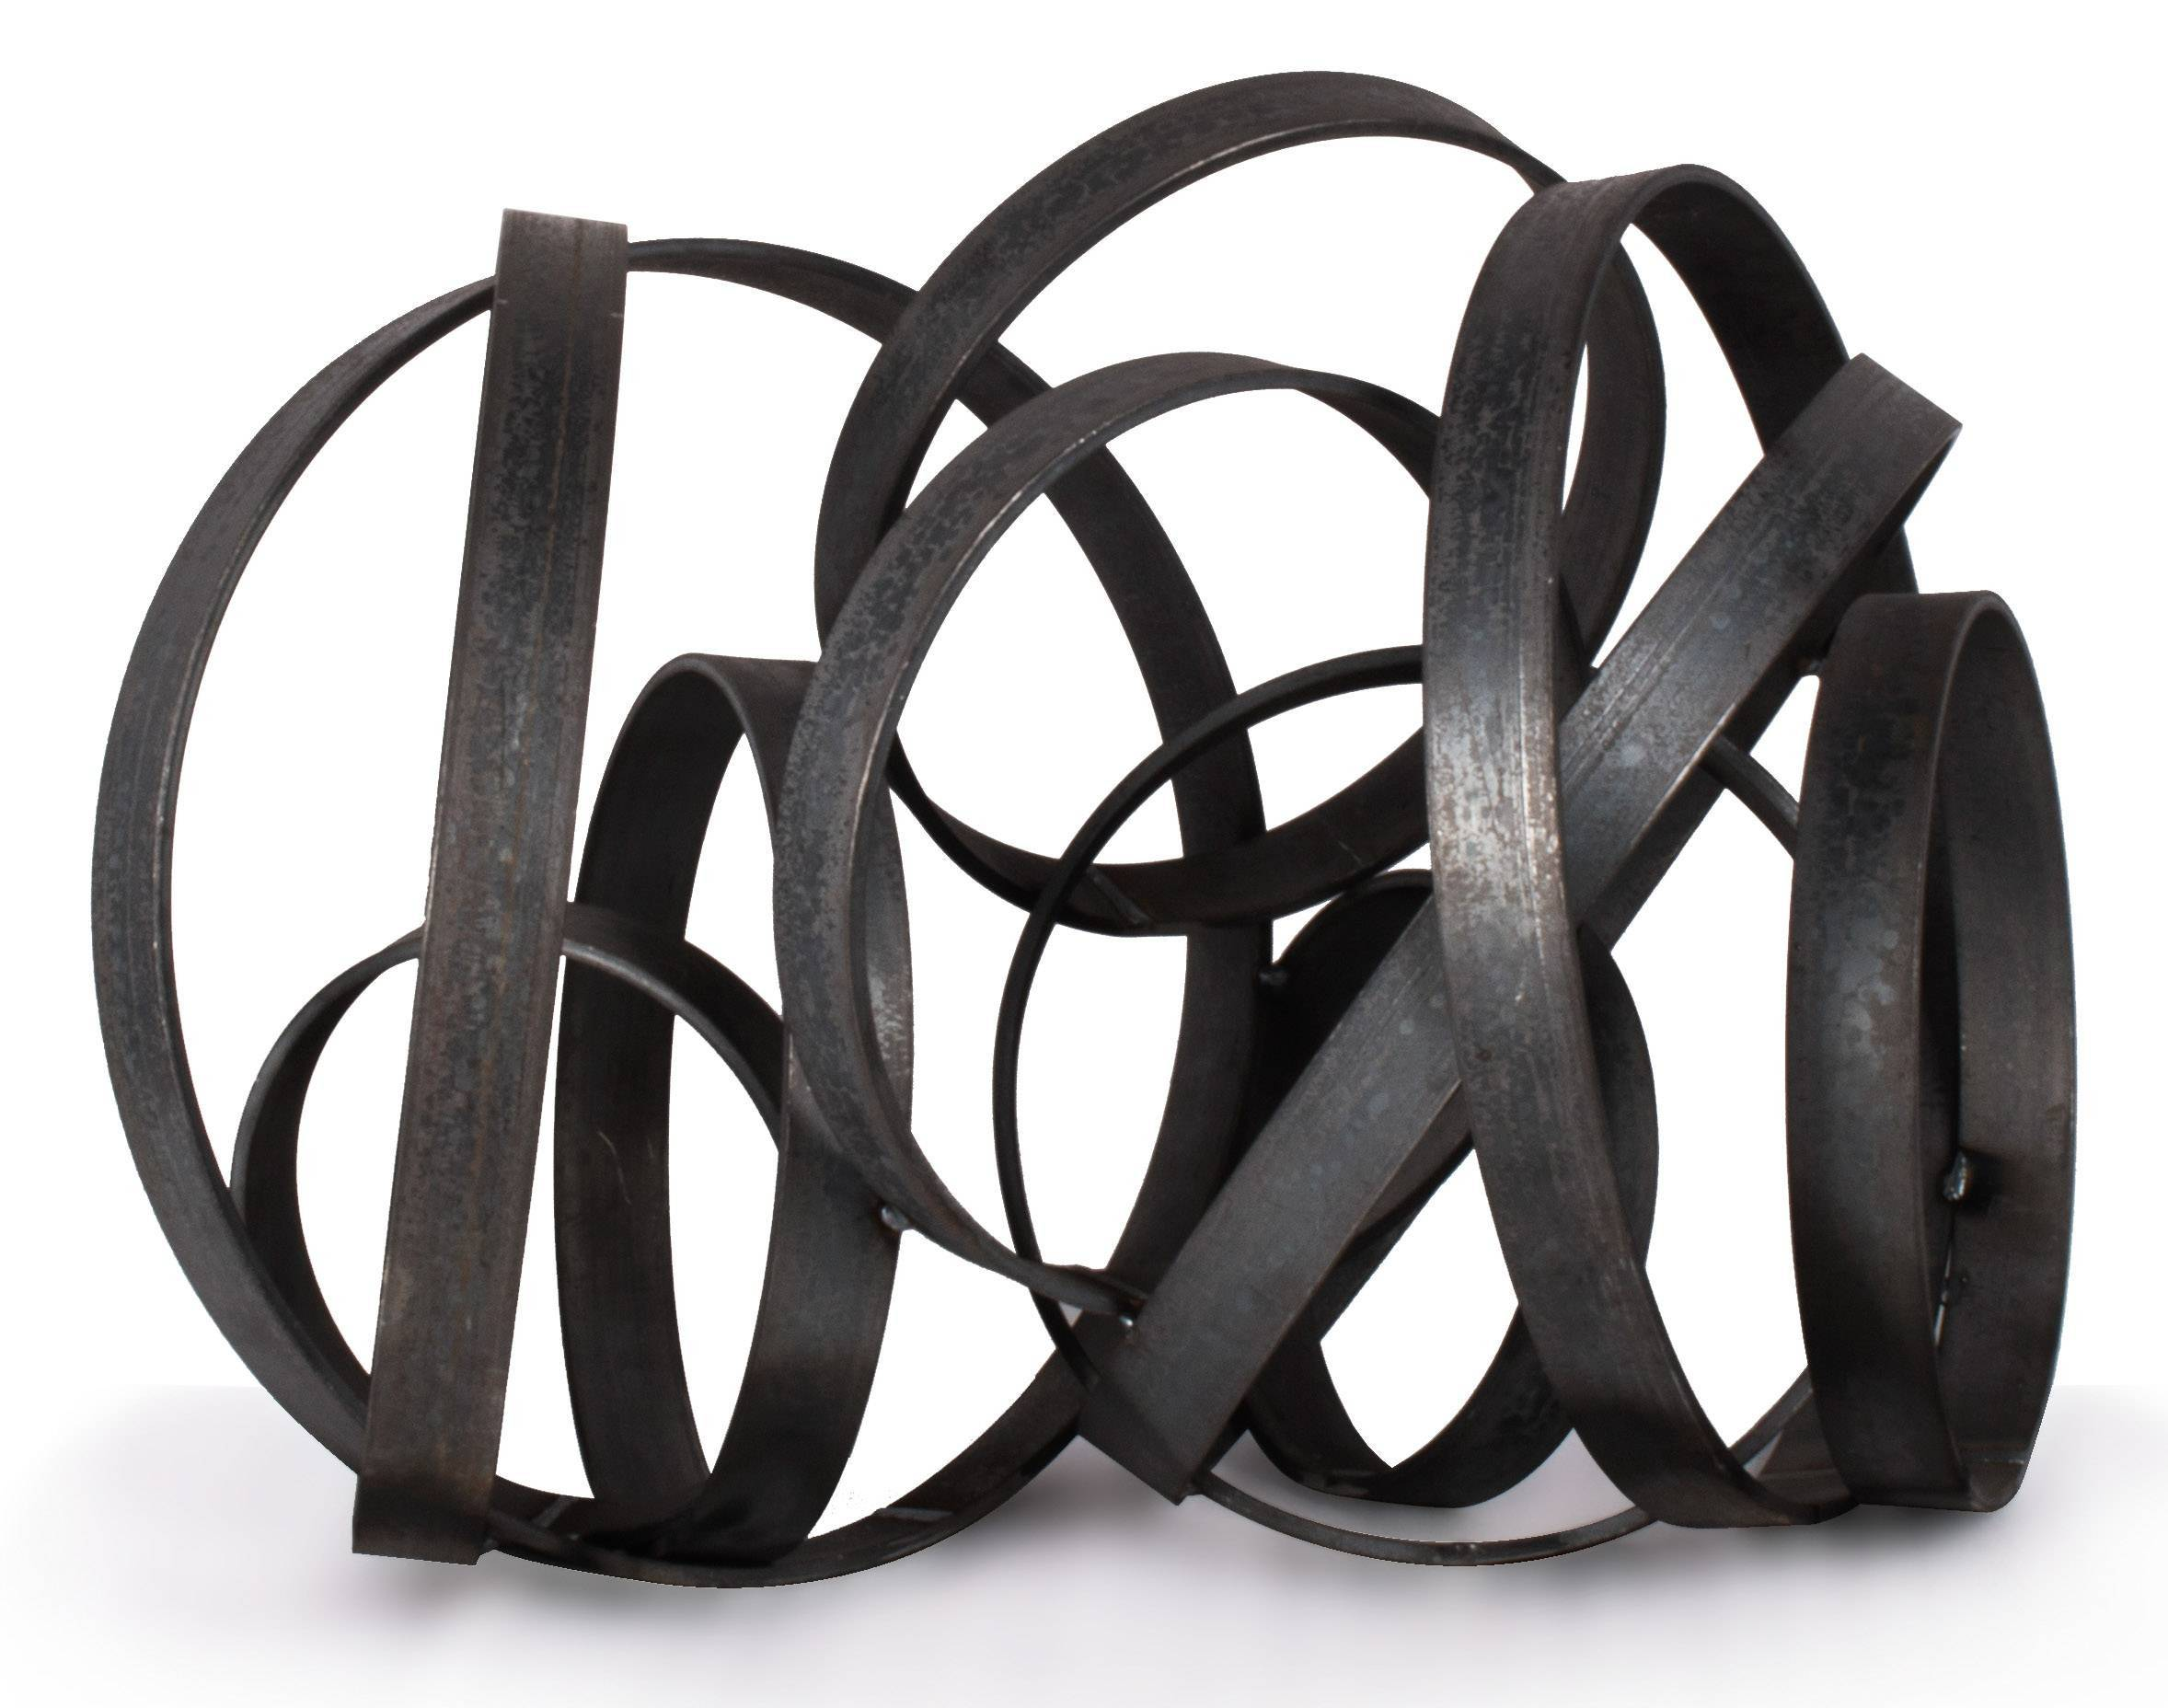 Steel Hoops - Sets Over Existing Burner | Starting at $750